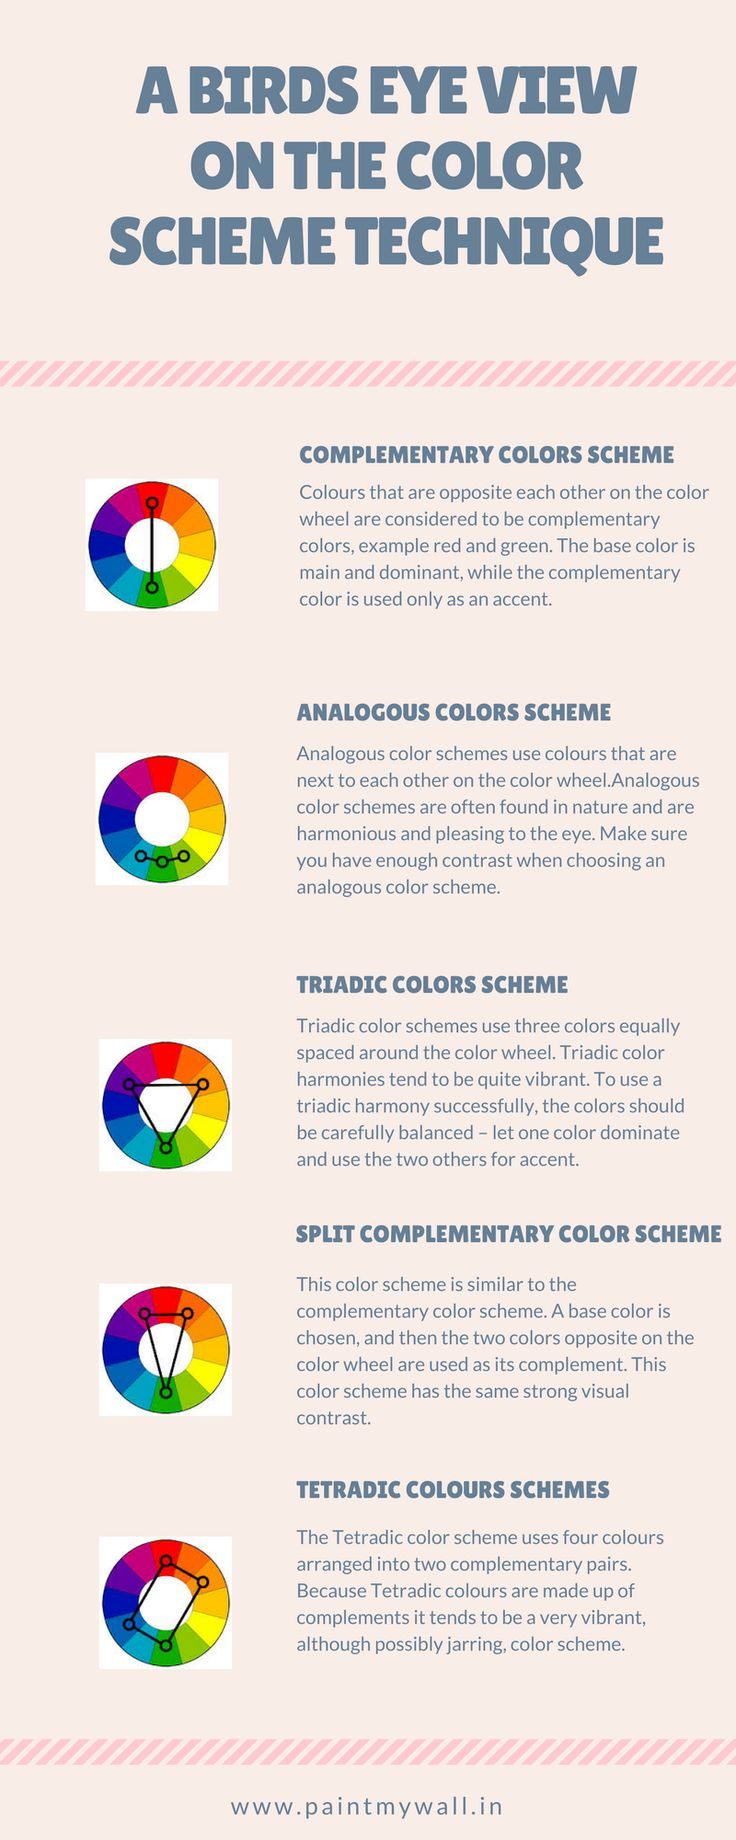 Understand About The Color Schemes To Come Out With That Perfect Design